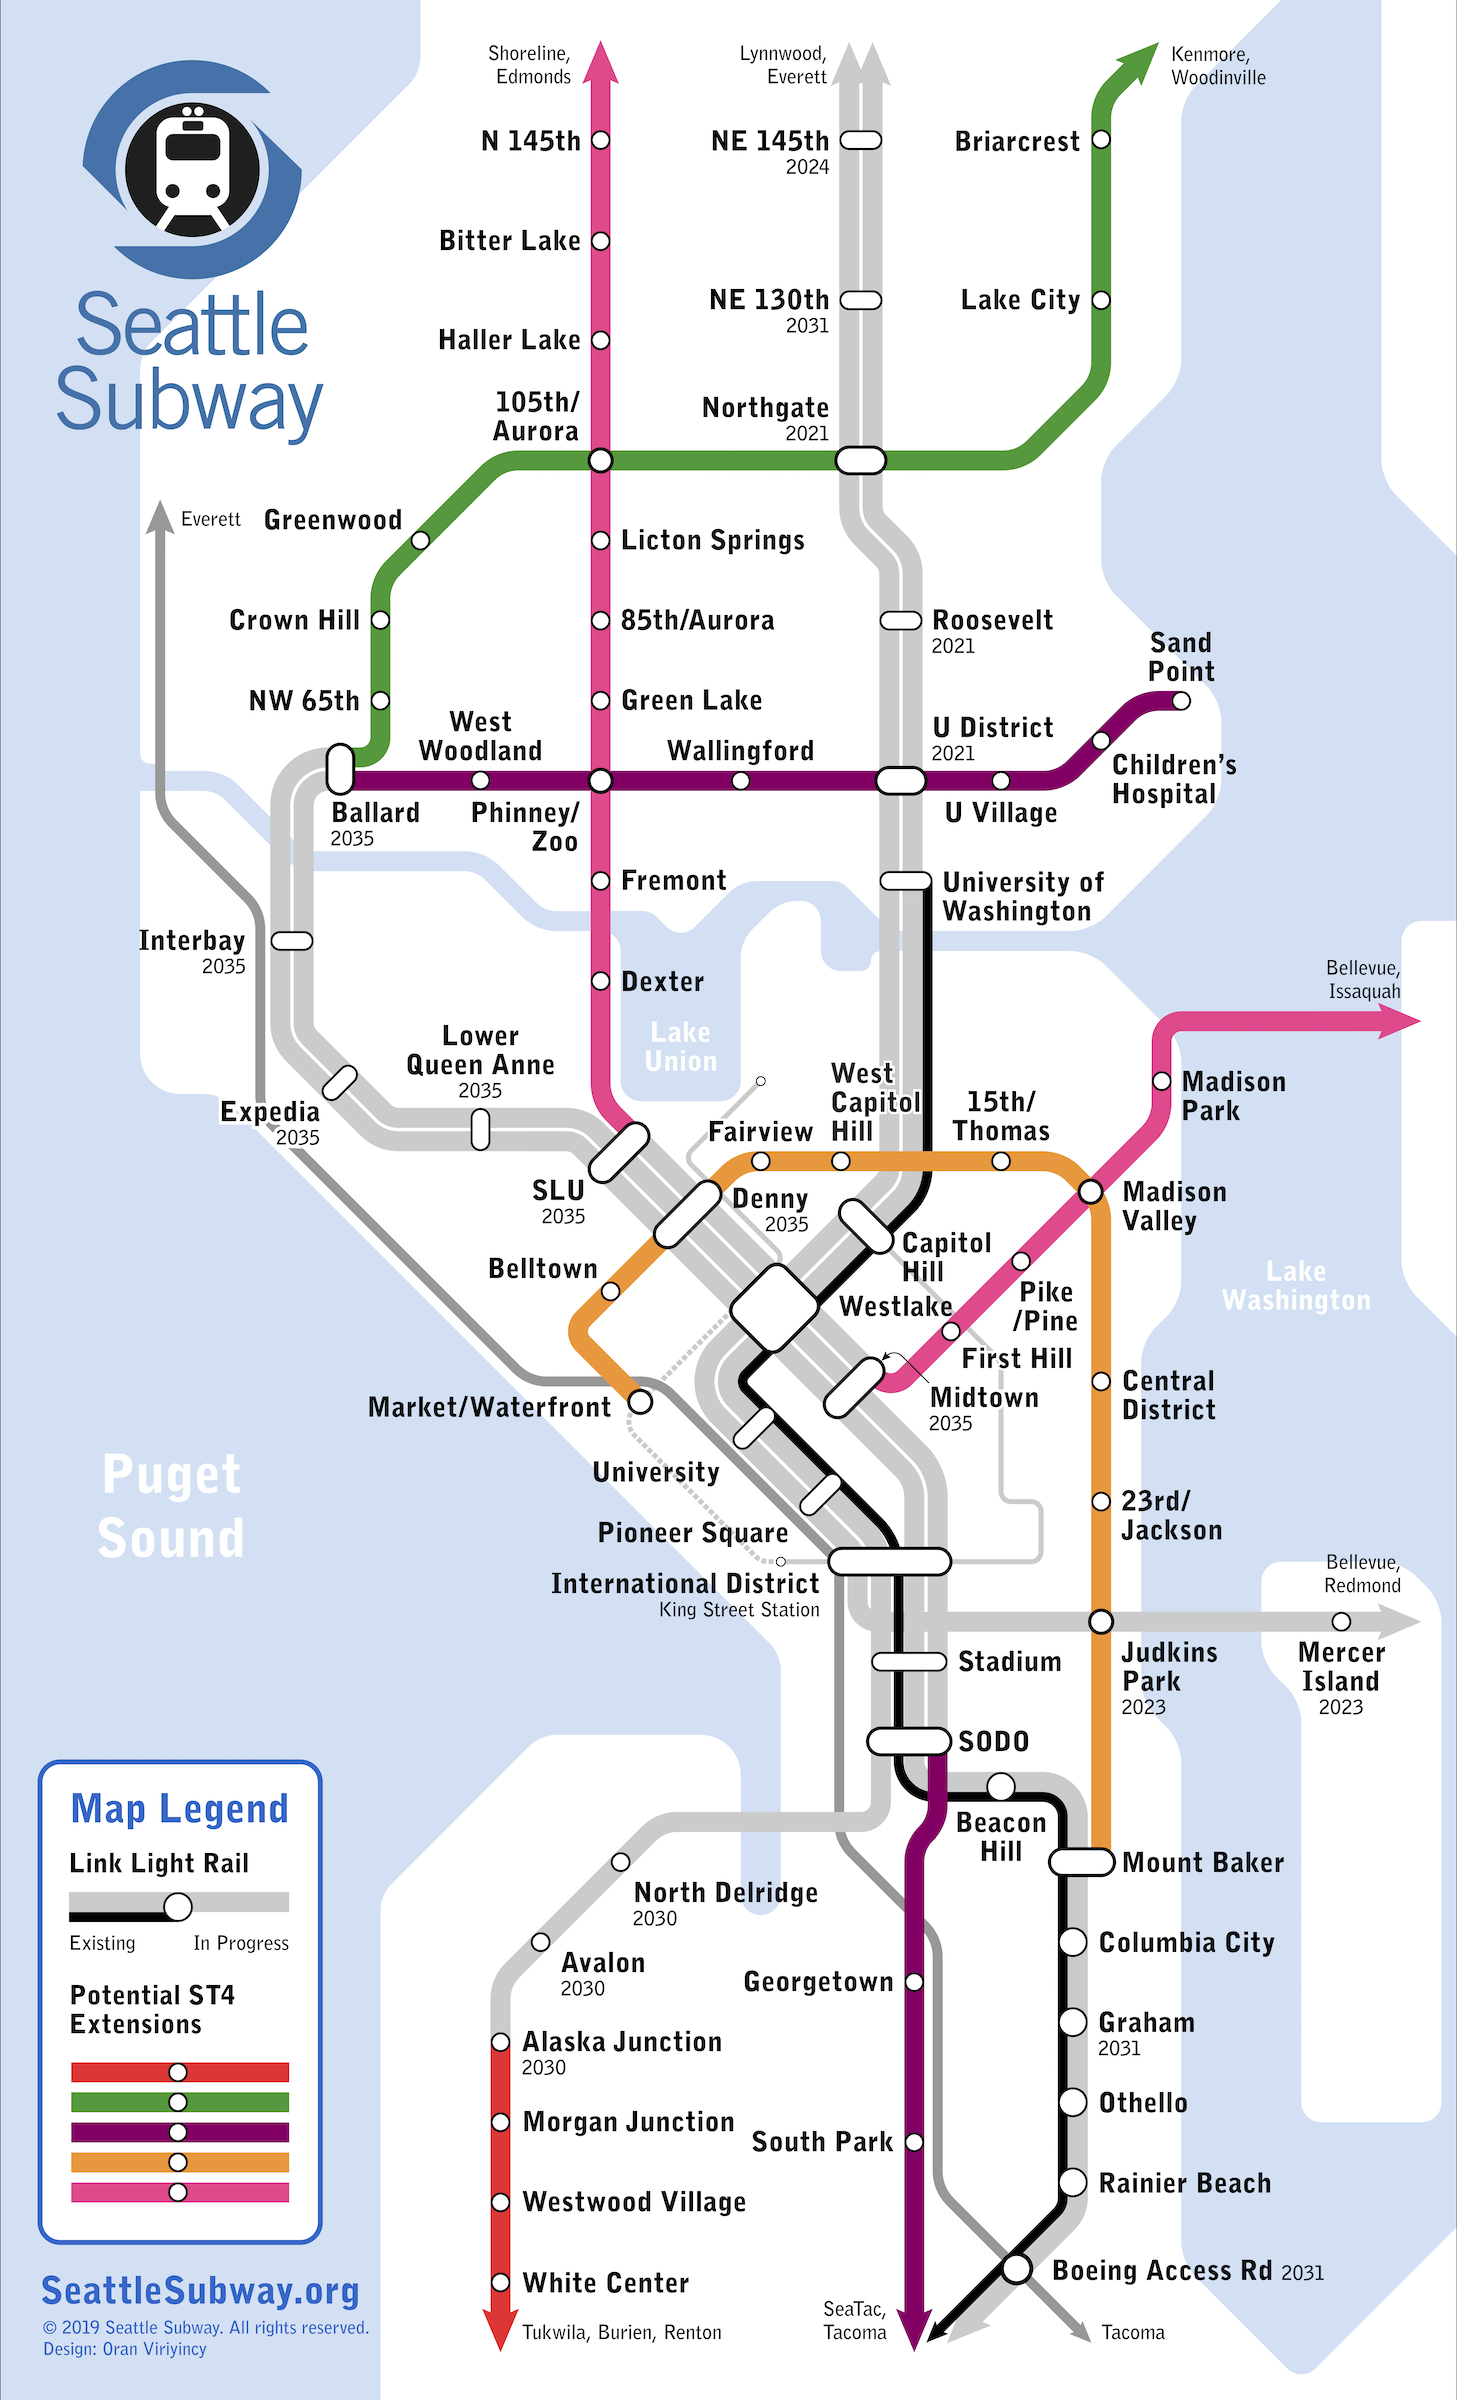 Seattle: It's time to start work on ST4